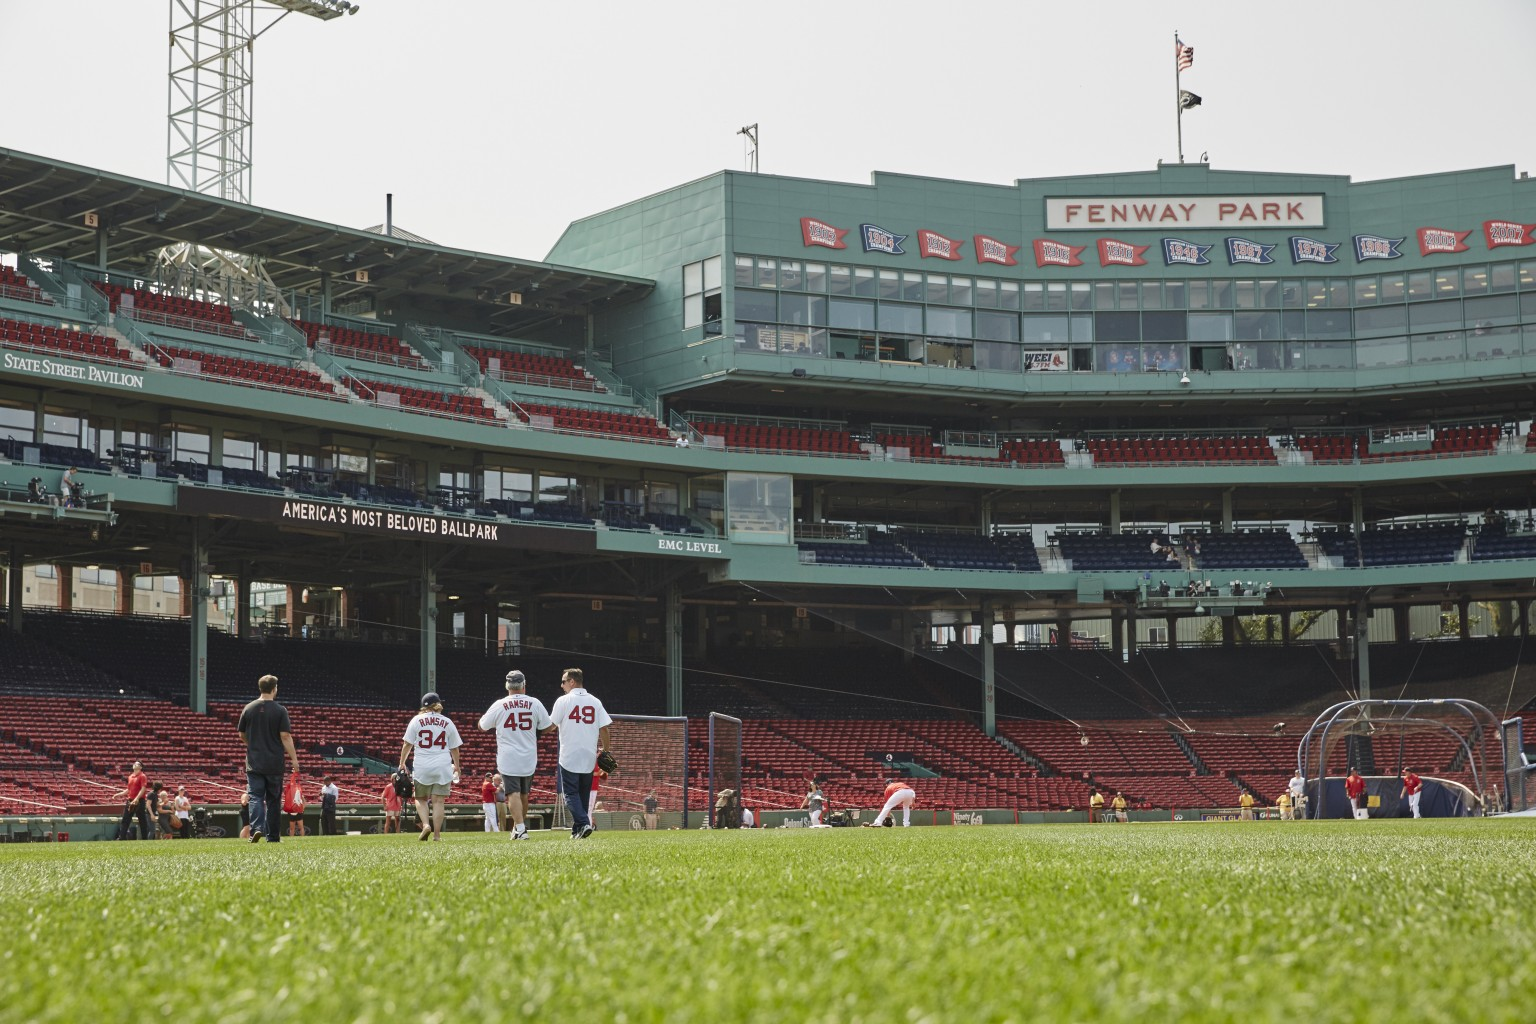 Night-At_Fenway-Park_Elliott_150902_1562